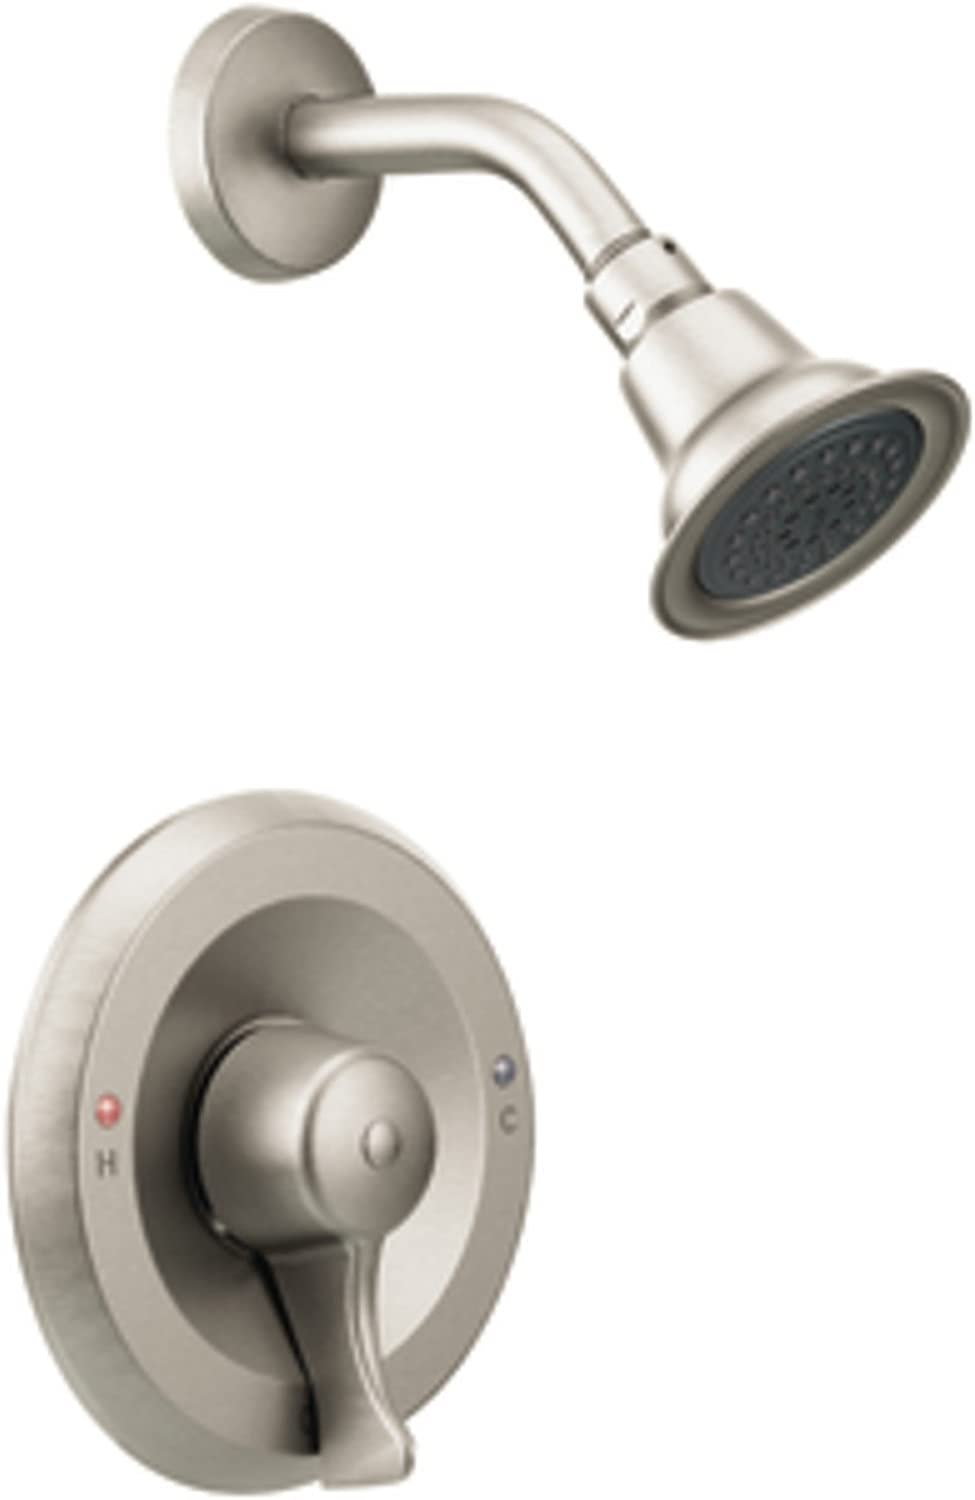 Moen T8375CBN Commercial M-Dura Posi-Temp Shower Trim, 2.5-gpm, Classic Brushed Nickel